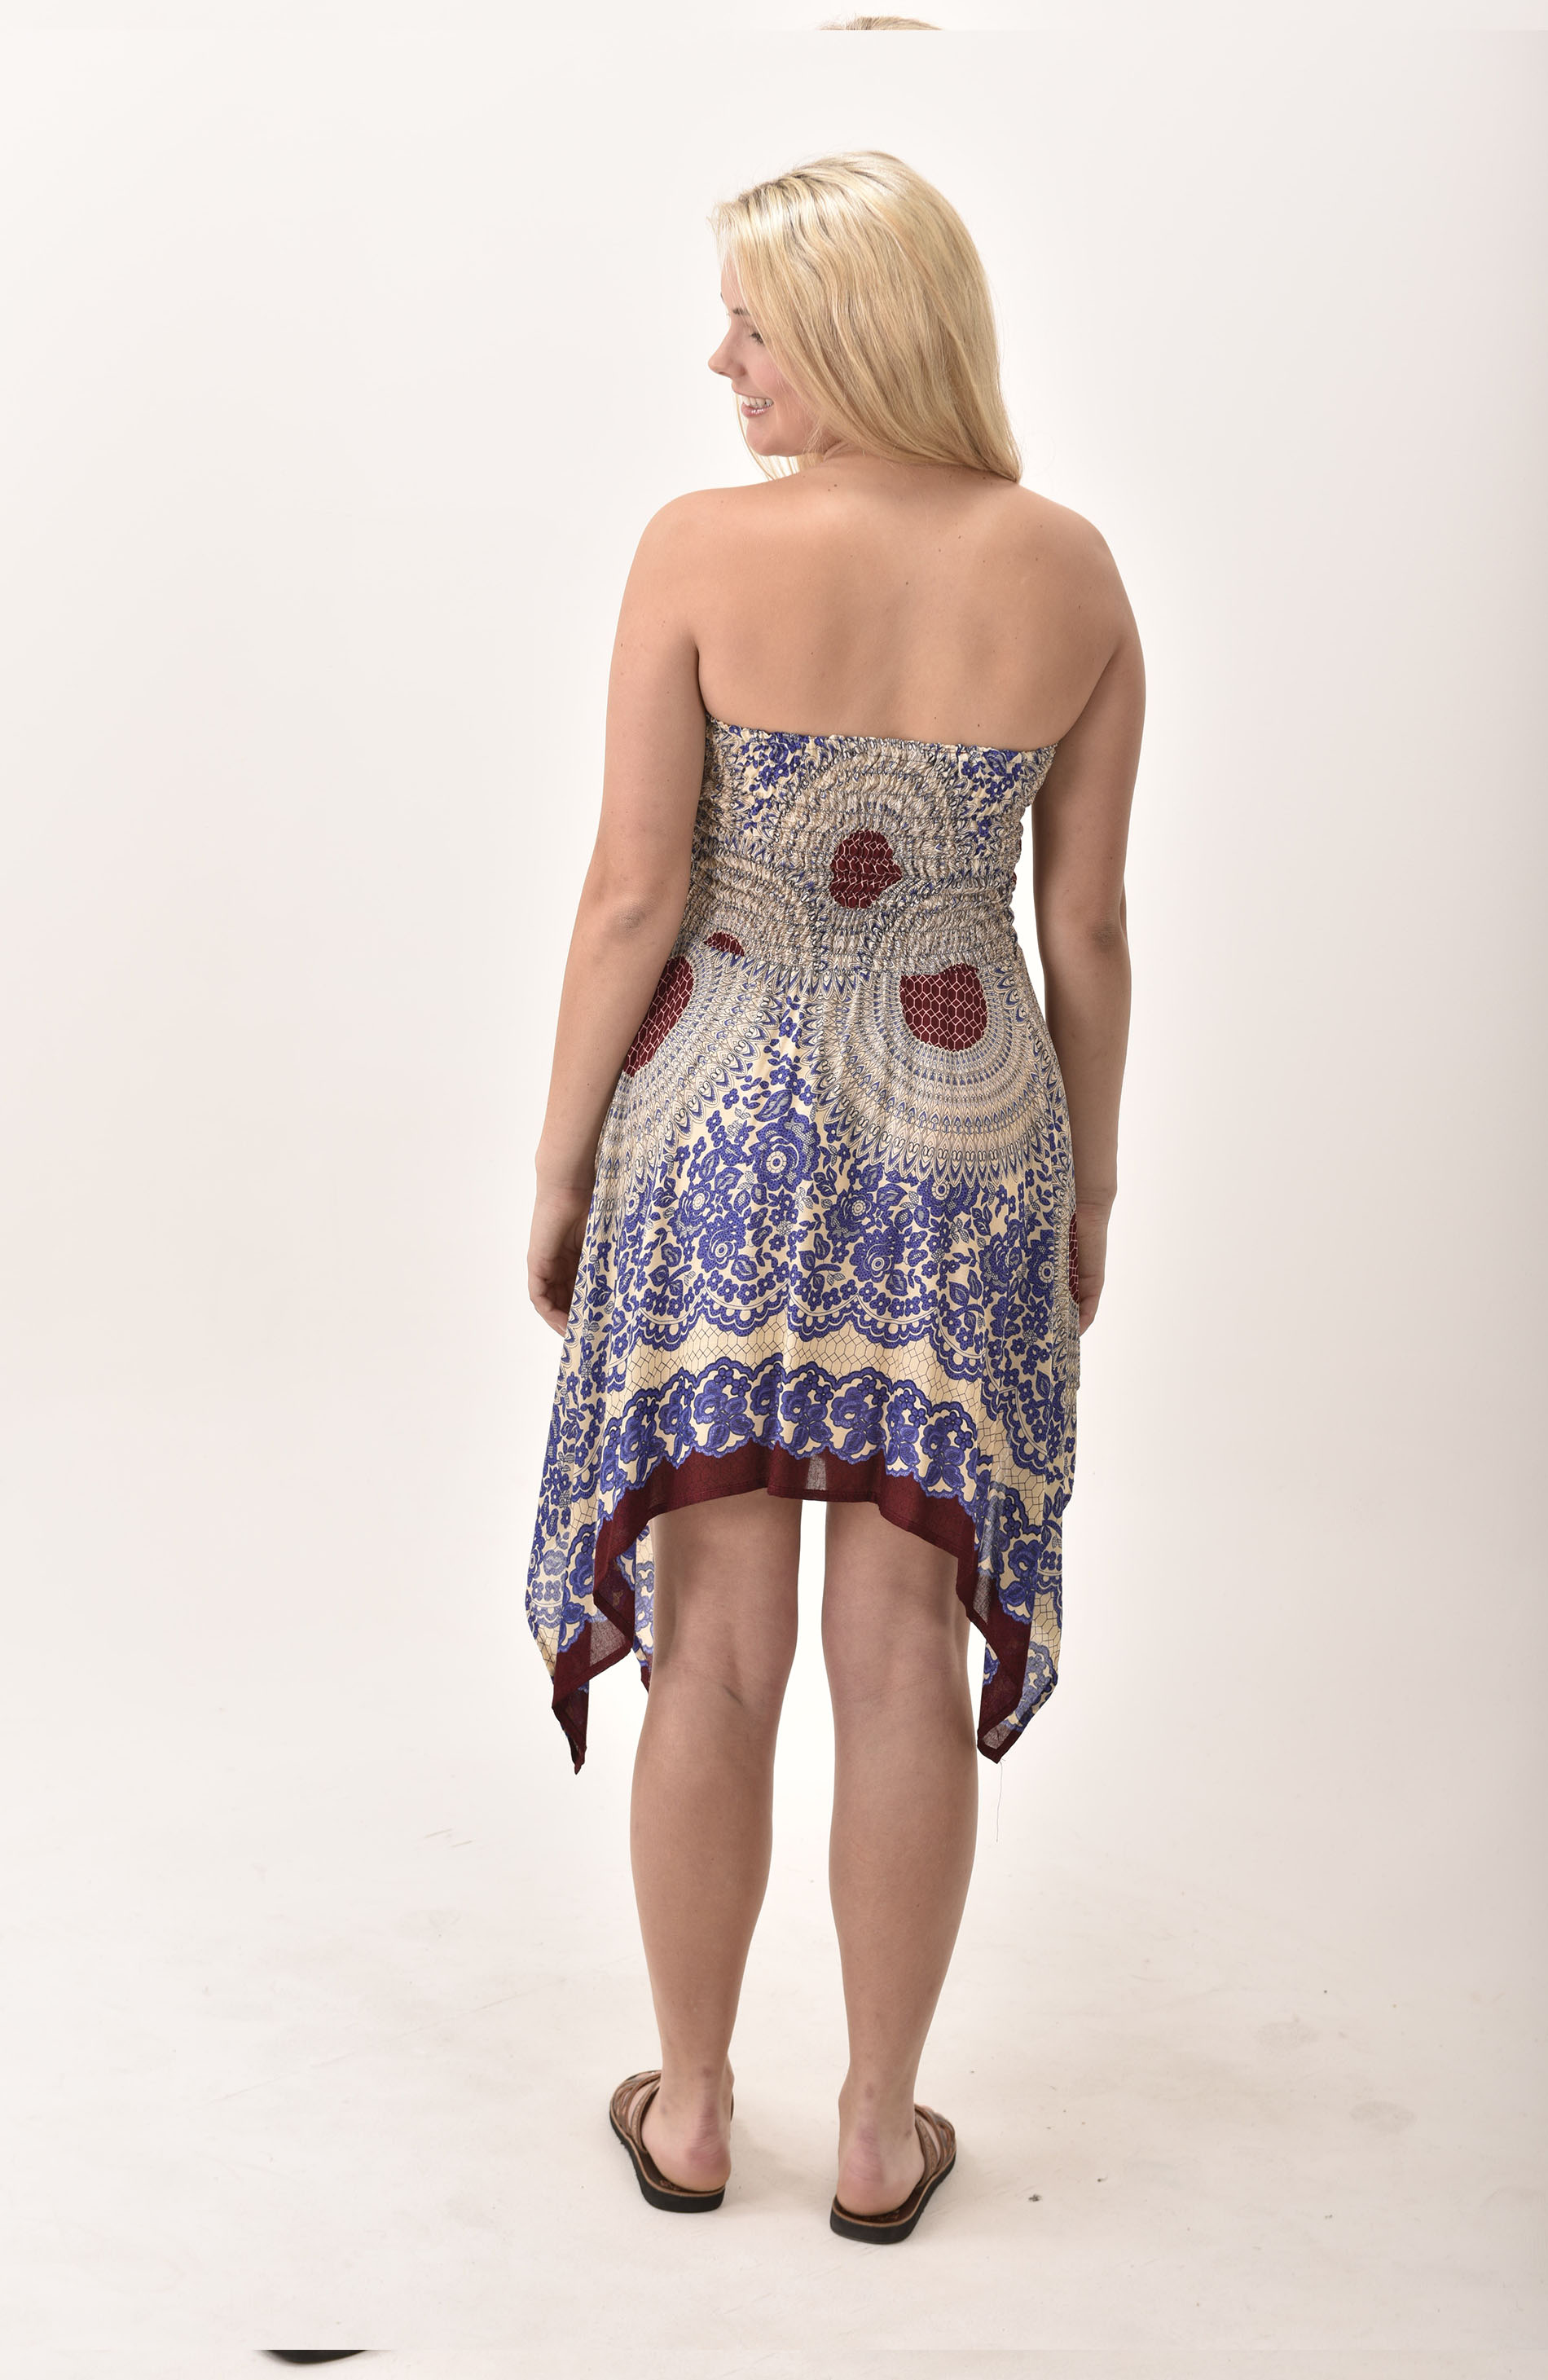 Honeycomb Print Rayon Fairy Dress / Skirt Blue